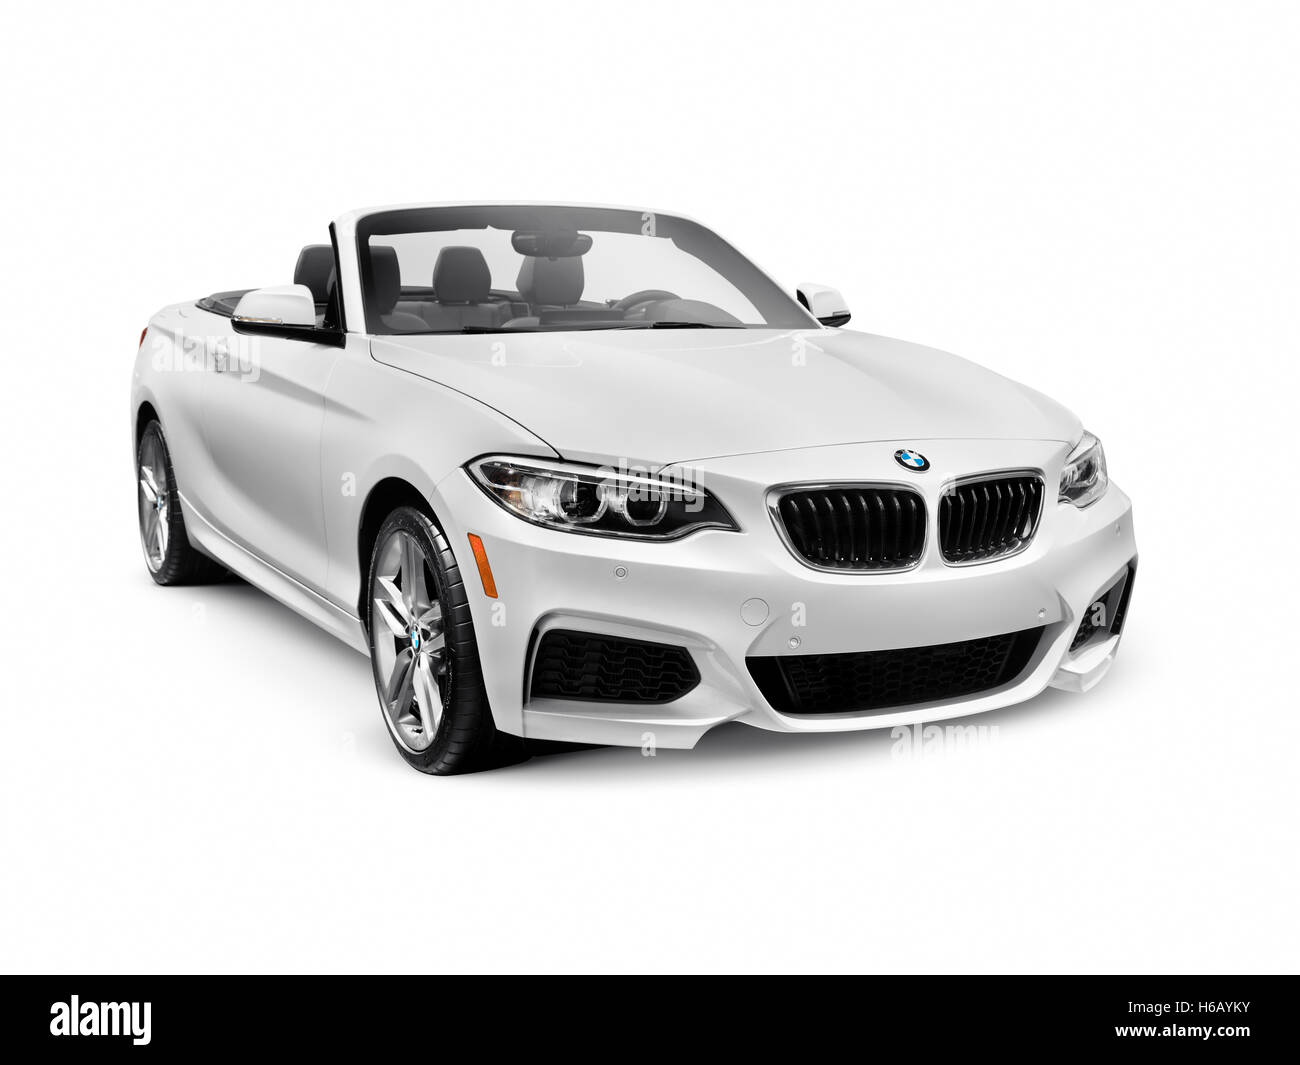 White 2016 bmw 2 series cabriolet luxury car isolated on white stock photo royalty free image - Bmw 2 series coupe white ...